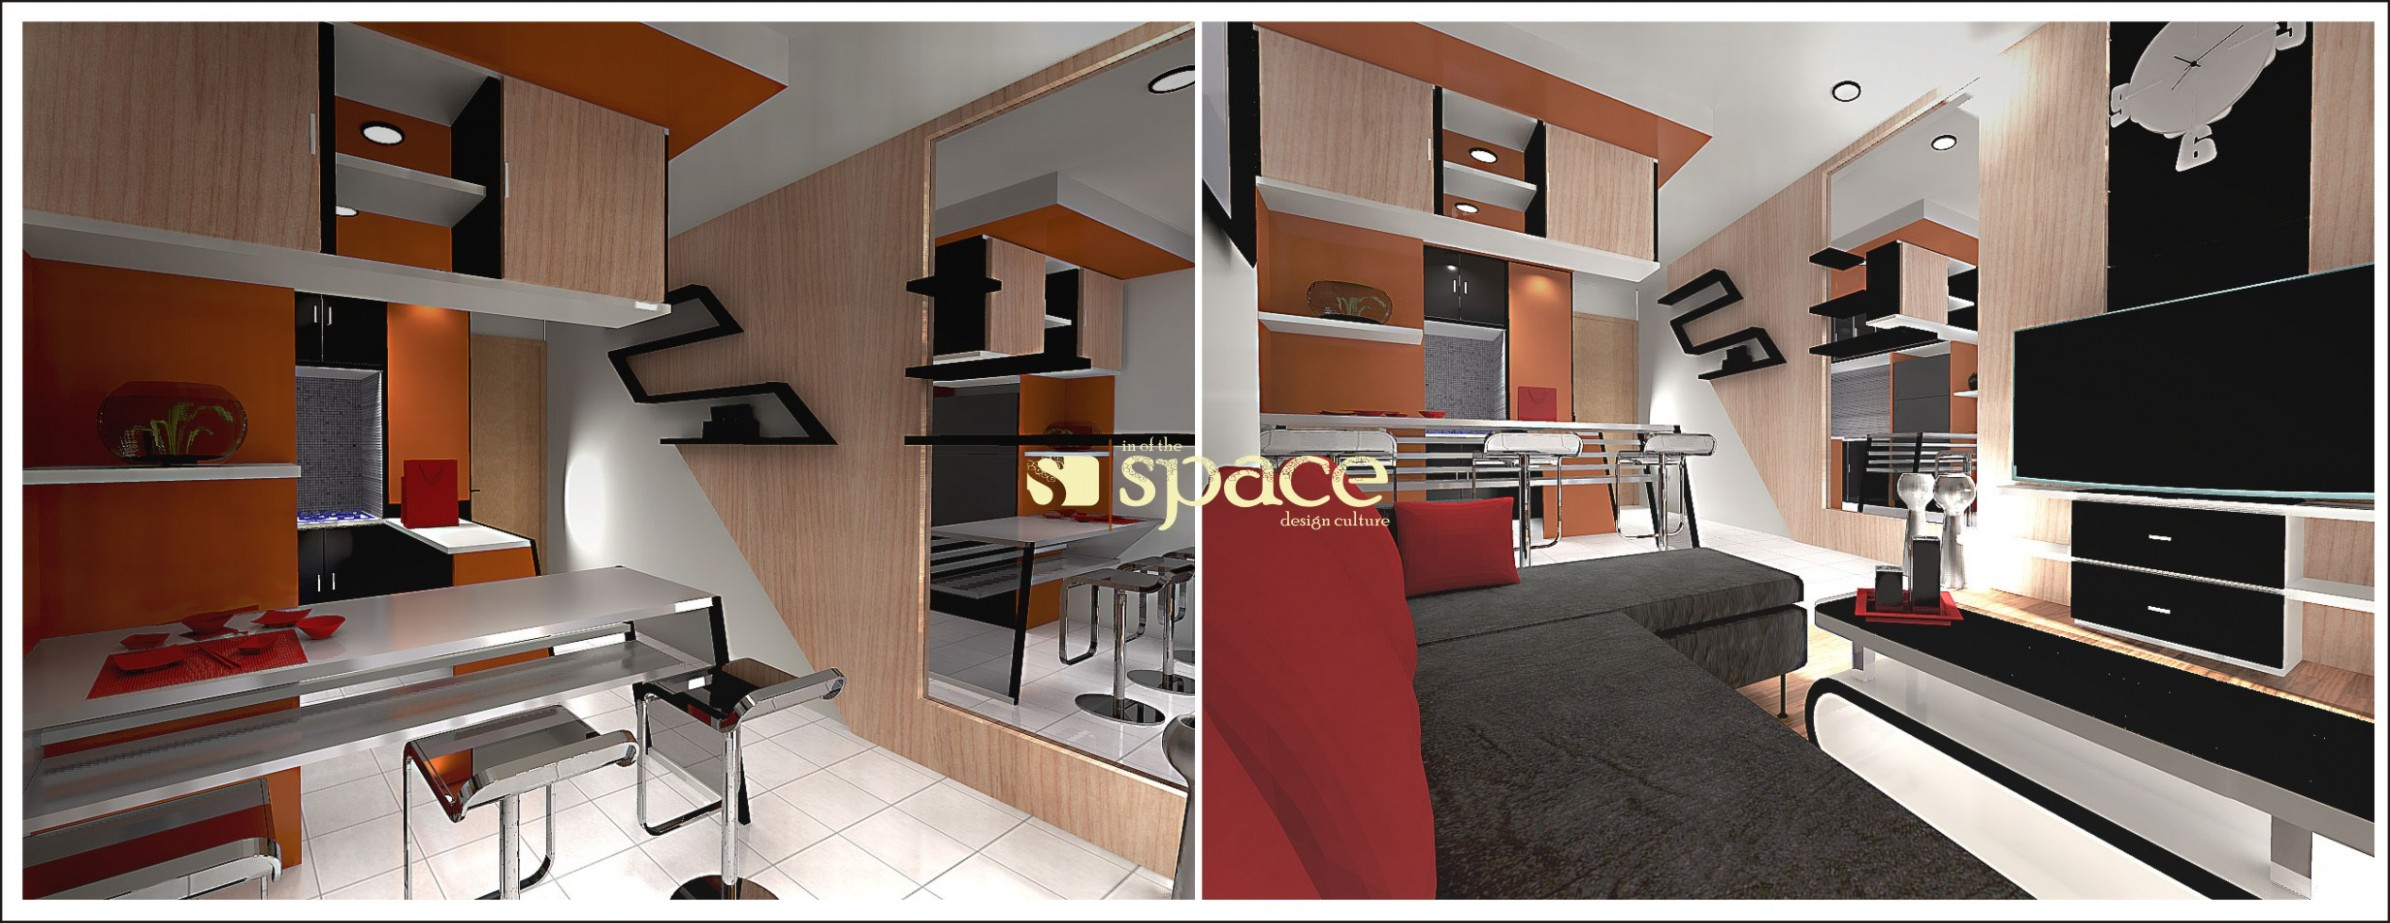 Home Design 10: Apartment Interior Design Jakarta - Apartment Interior Design Jakarta